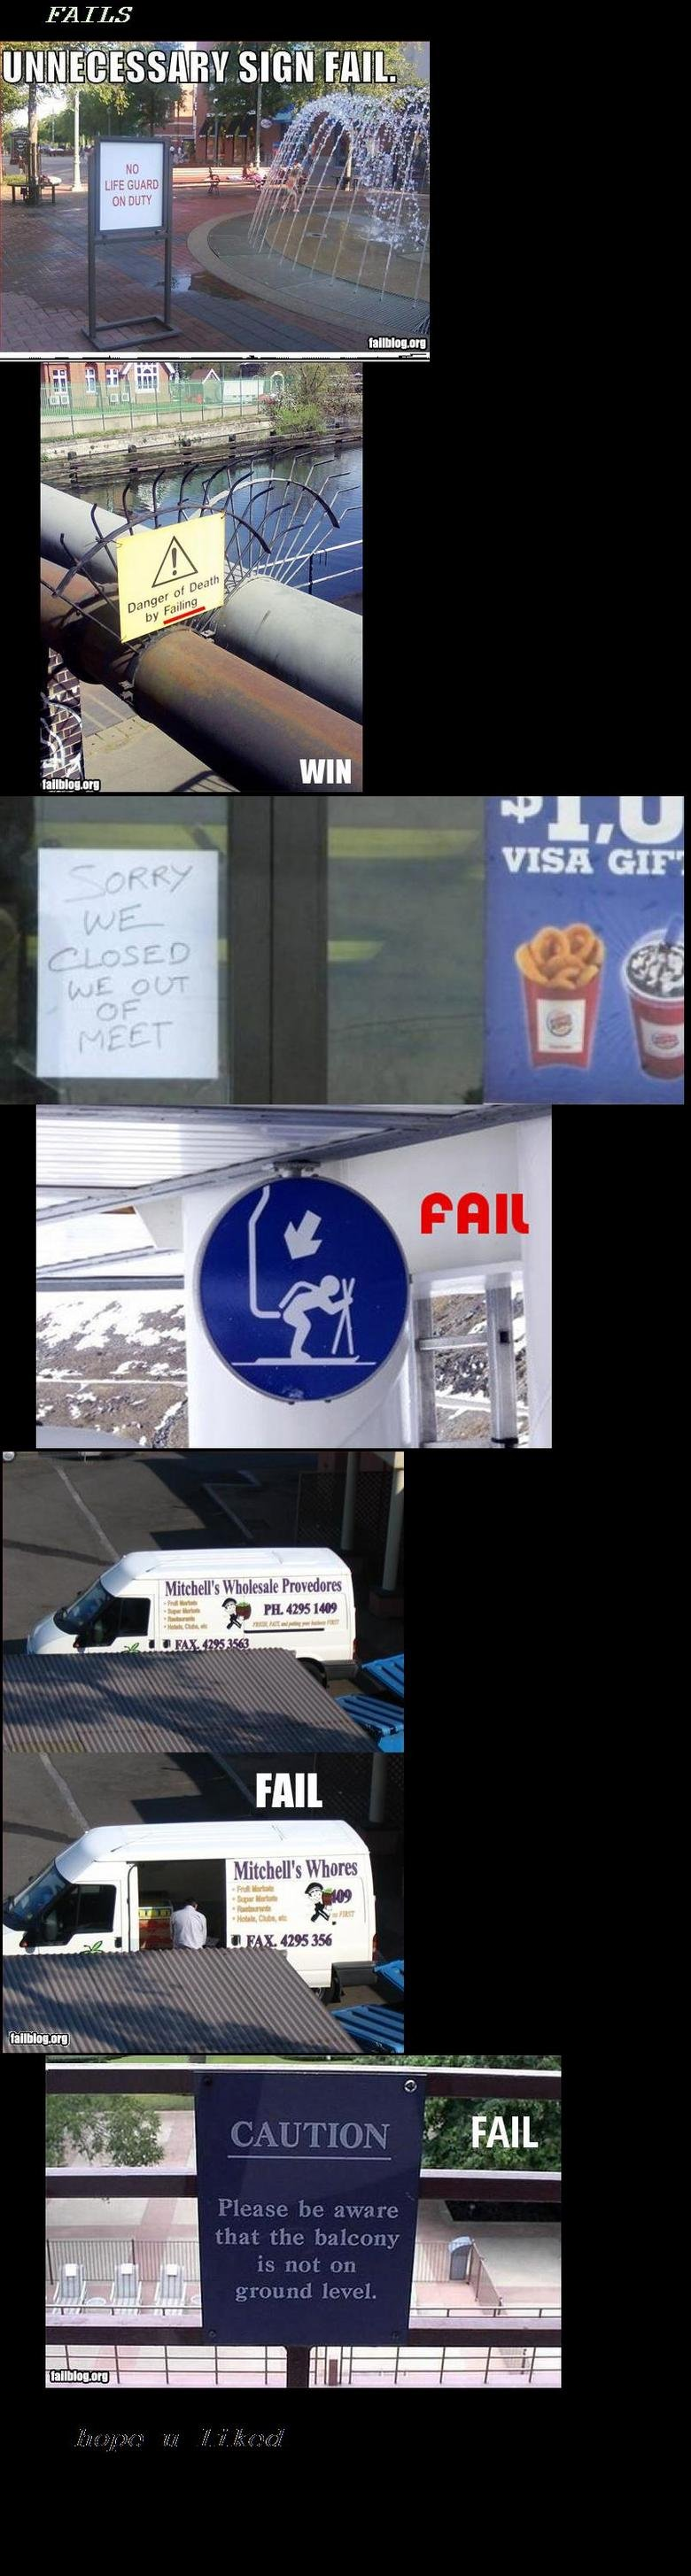 """fails. heres moar<br /> <a href=""""pictures/653169/fails+2/"""" target=blank>www.funnyjunk.com/funny_pictures/653169/fails+2/</a>. nuns w"""